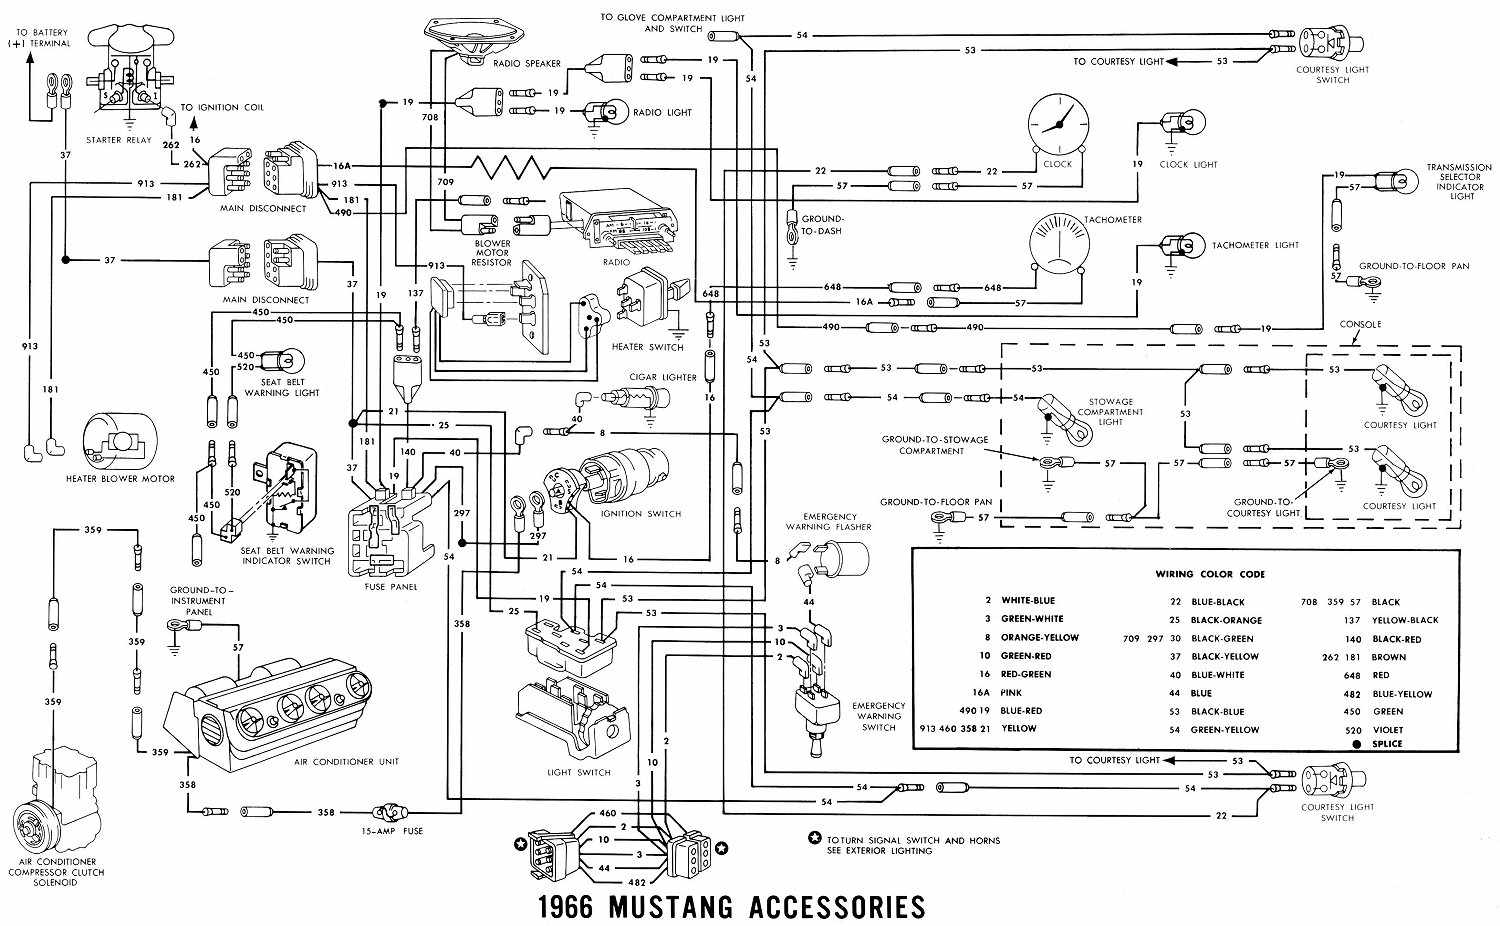 Accessories Electrical Wiring Diagrams besides 1998 Ford Taurus Radio Wiring Diagram besides Wiring Diagram For 1990 Ford Ranger moreover 95 Nissan Maxima Thermostat Location also Power Windows Schematic Diagram Of 1967 1968 Thunderbird Part 1. on 1996 thunderbird speaker wiring